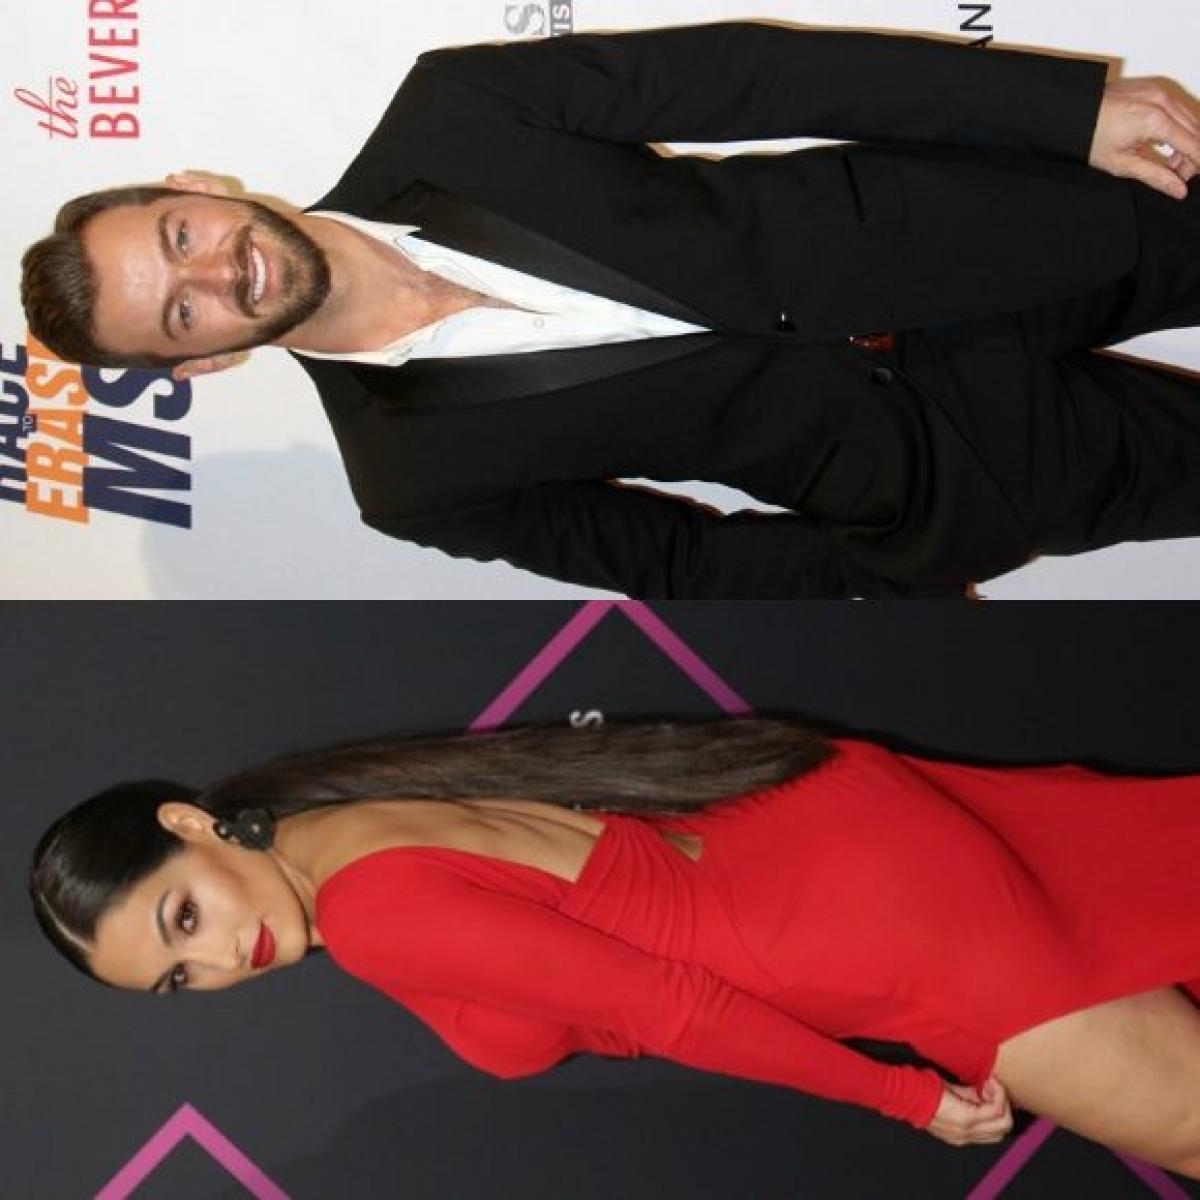 Nikki Bella Moving On From John Cena With 'DWTS' Partner Artem Chigvintsev